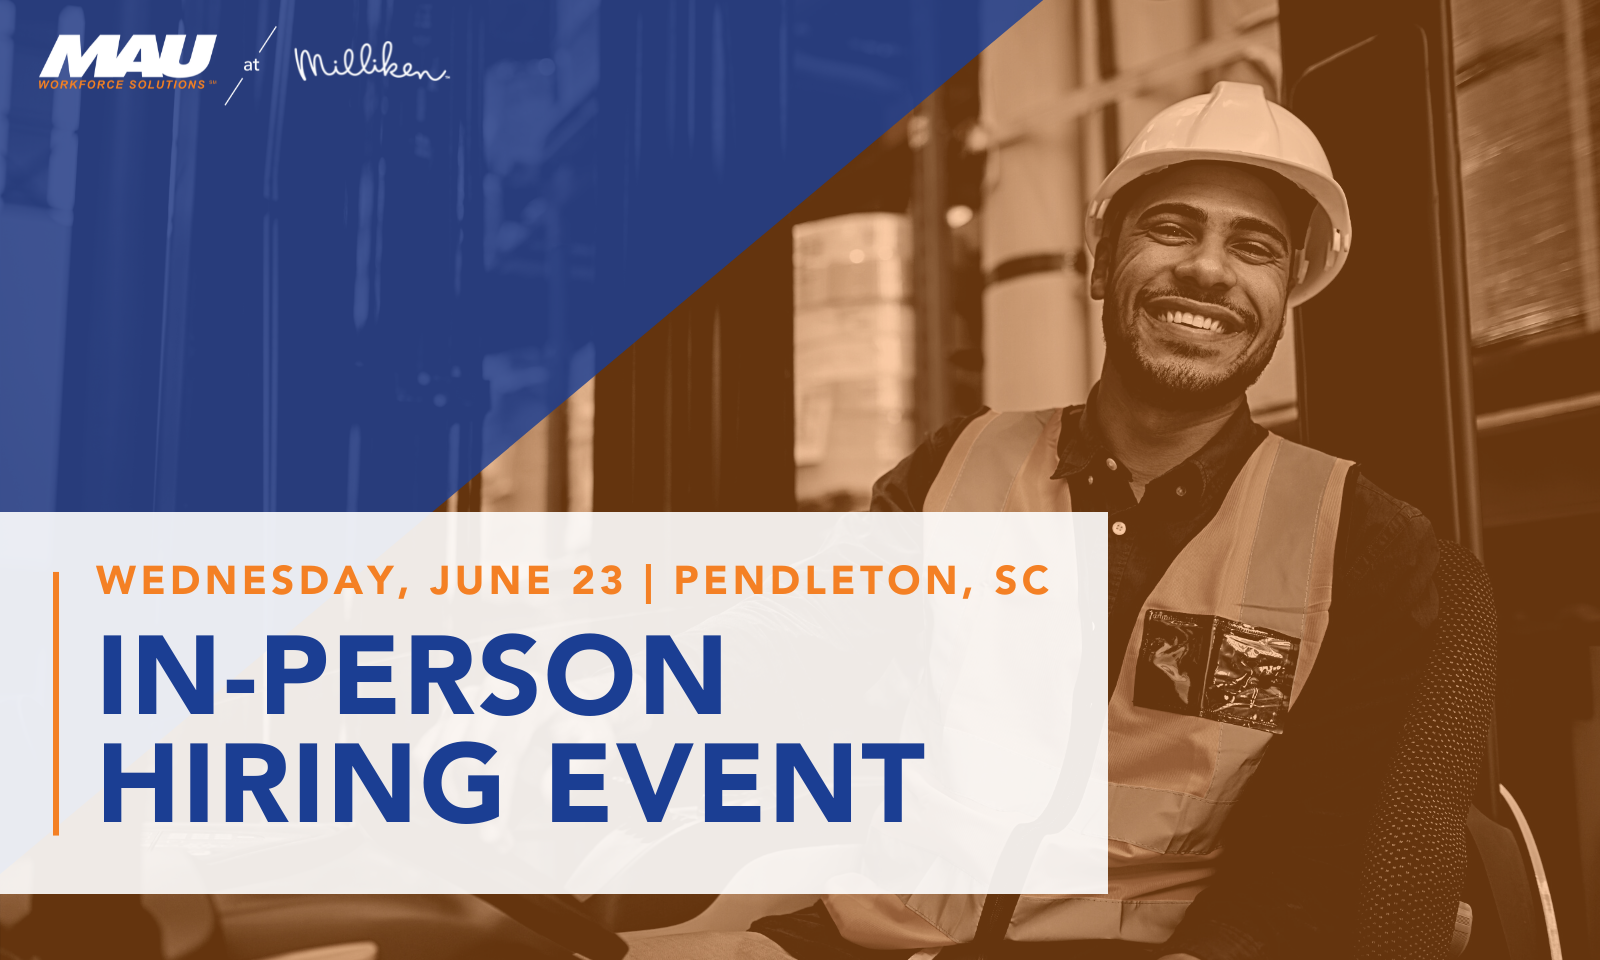 MAU at Milliken In-person Hiring Event in Pendleton SC